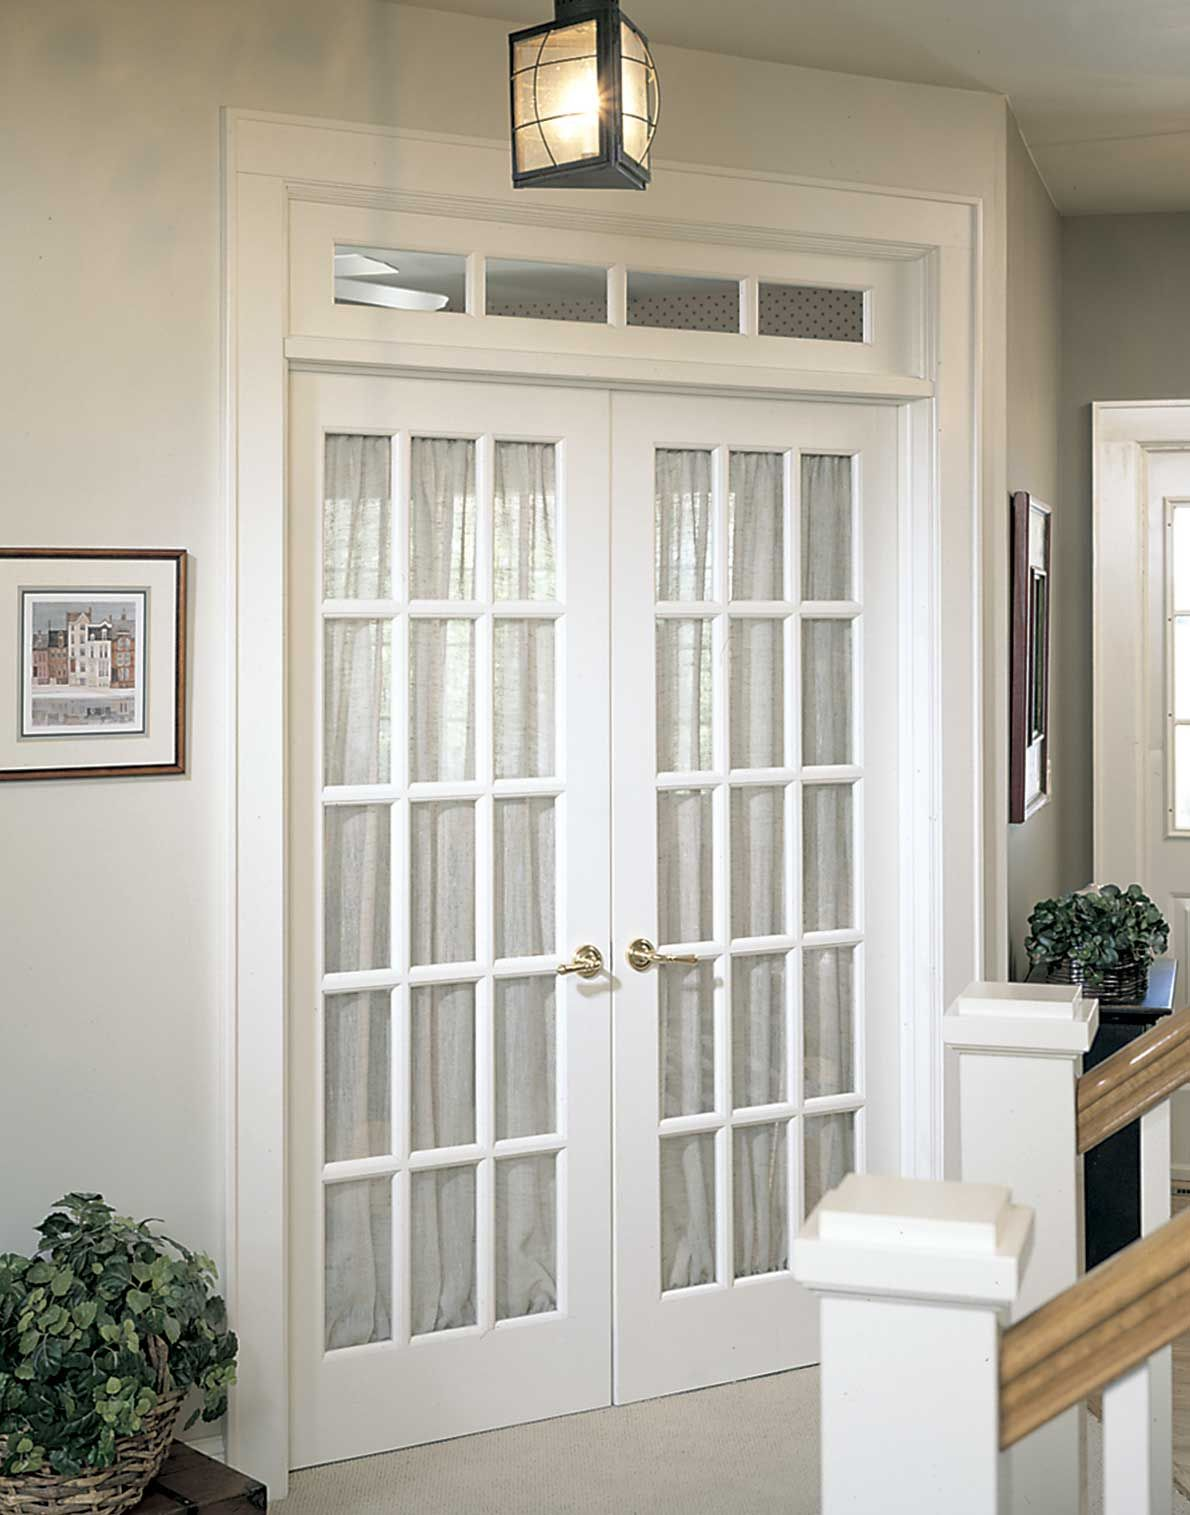 Another nice French door configuration. French doors